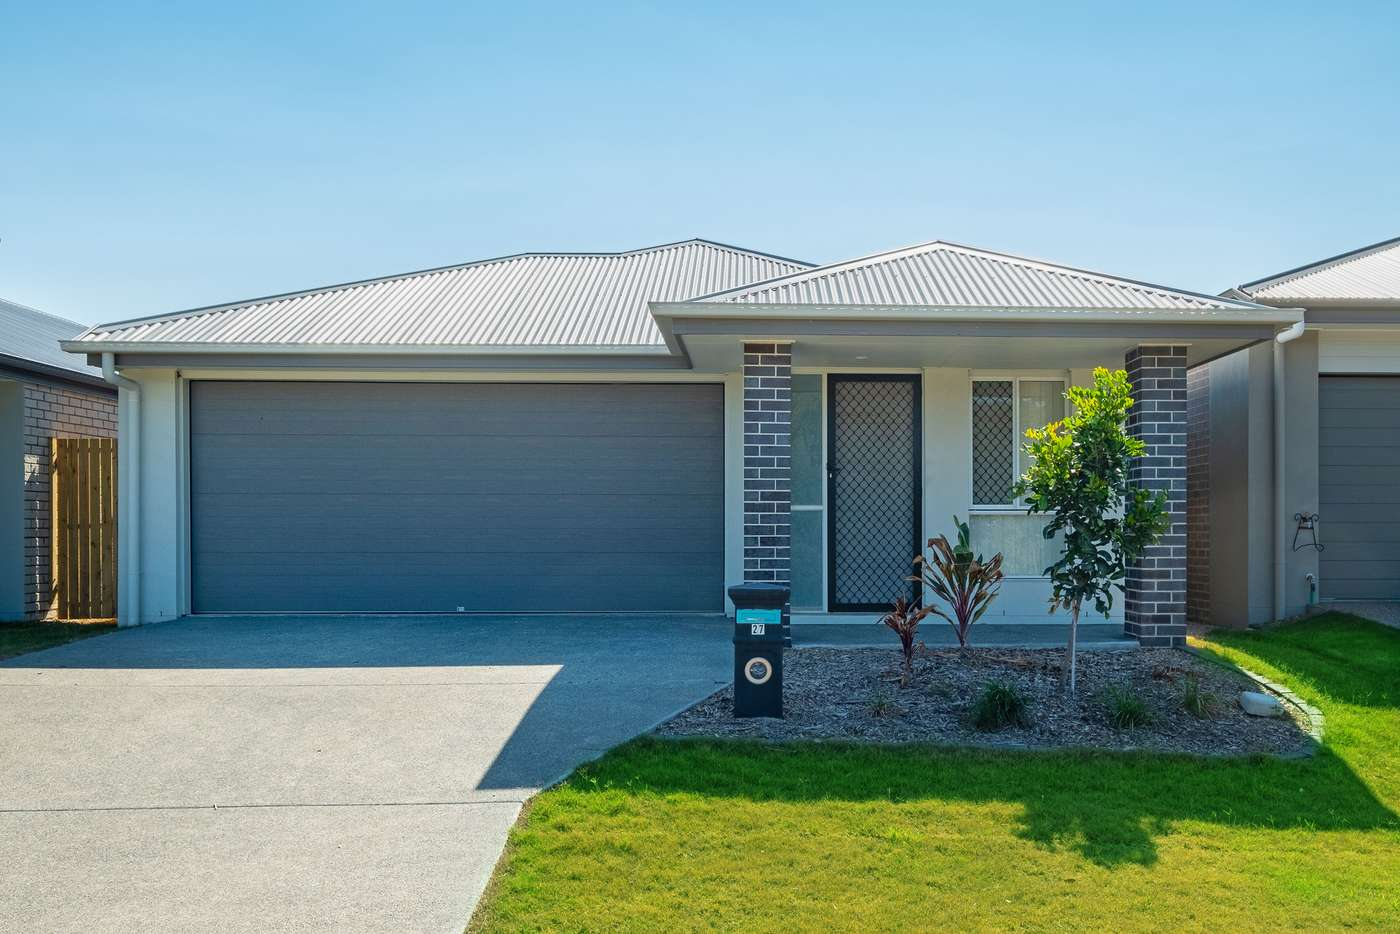 Main view of Homely house listing, 27 Marl Crescent, Yarrabilba QLD 4207